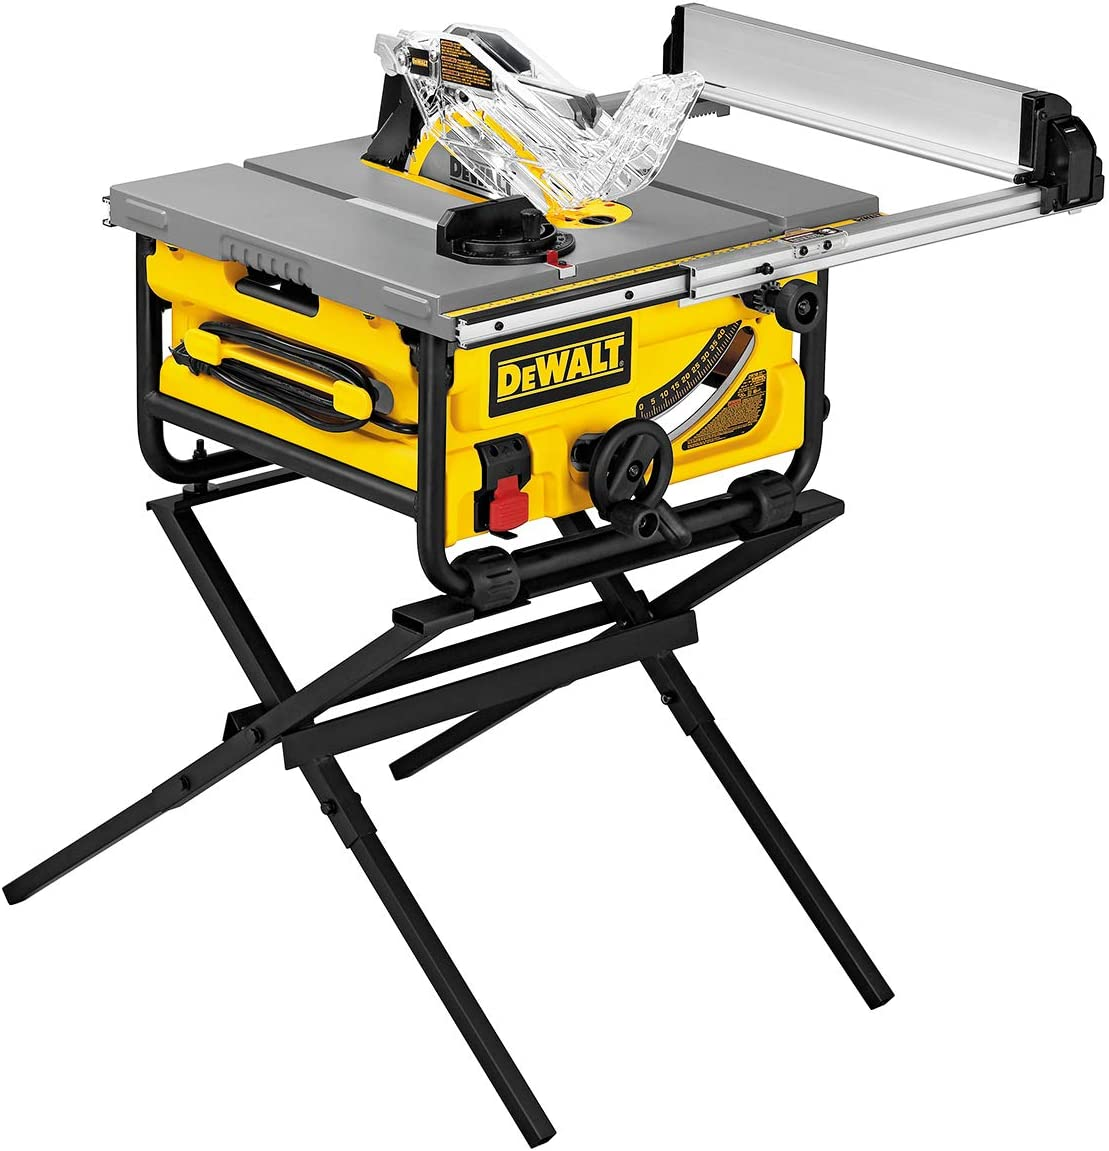 DEWALT DW745S featured image